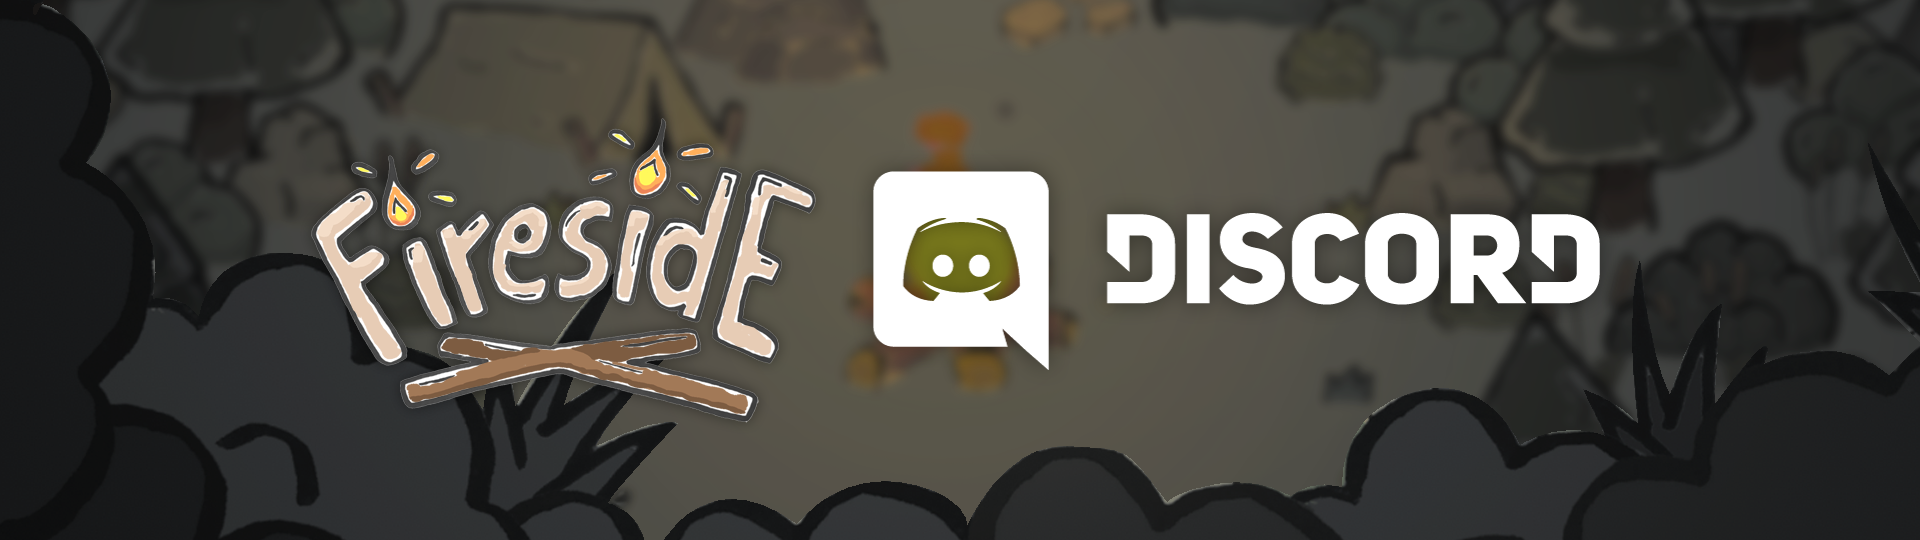 Join Firside on Discord